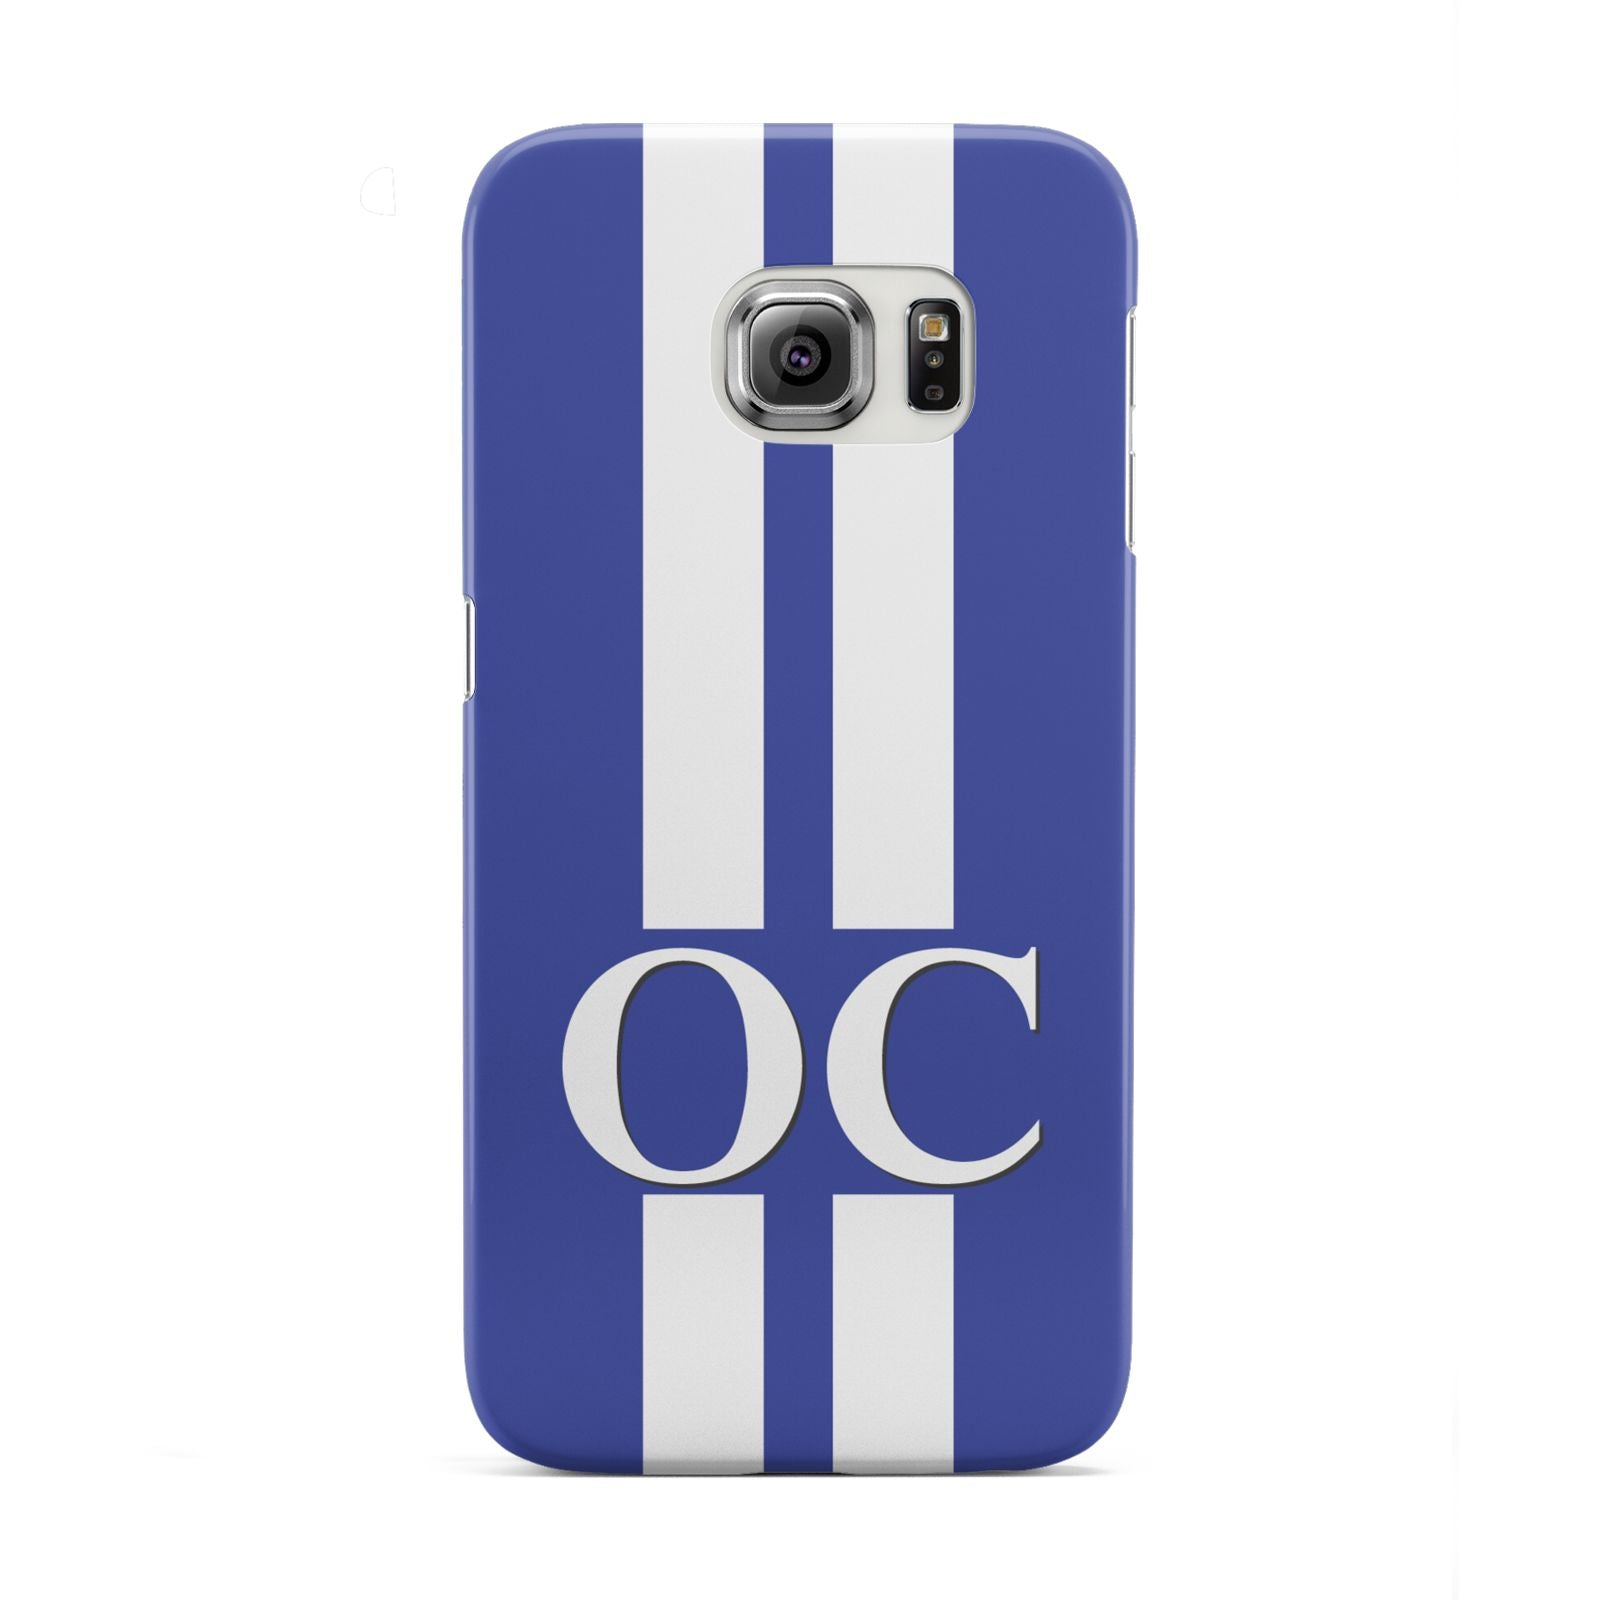 Blue Personalised Initials Samsung Galaxy S6 Edge Case